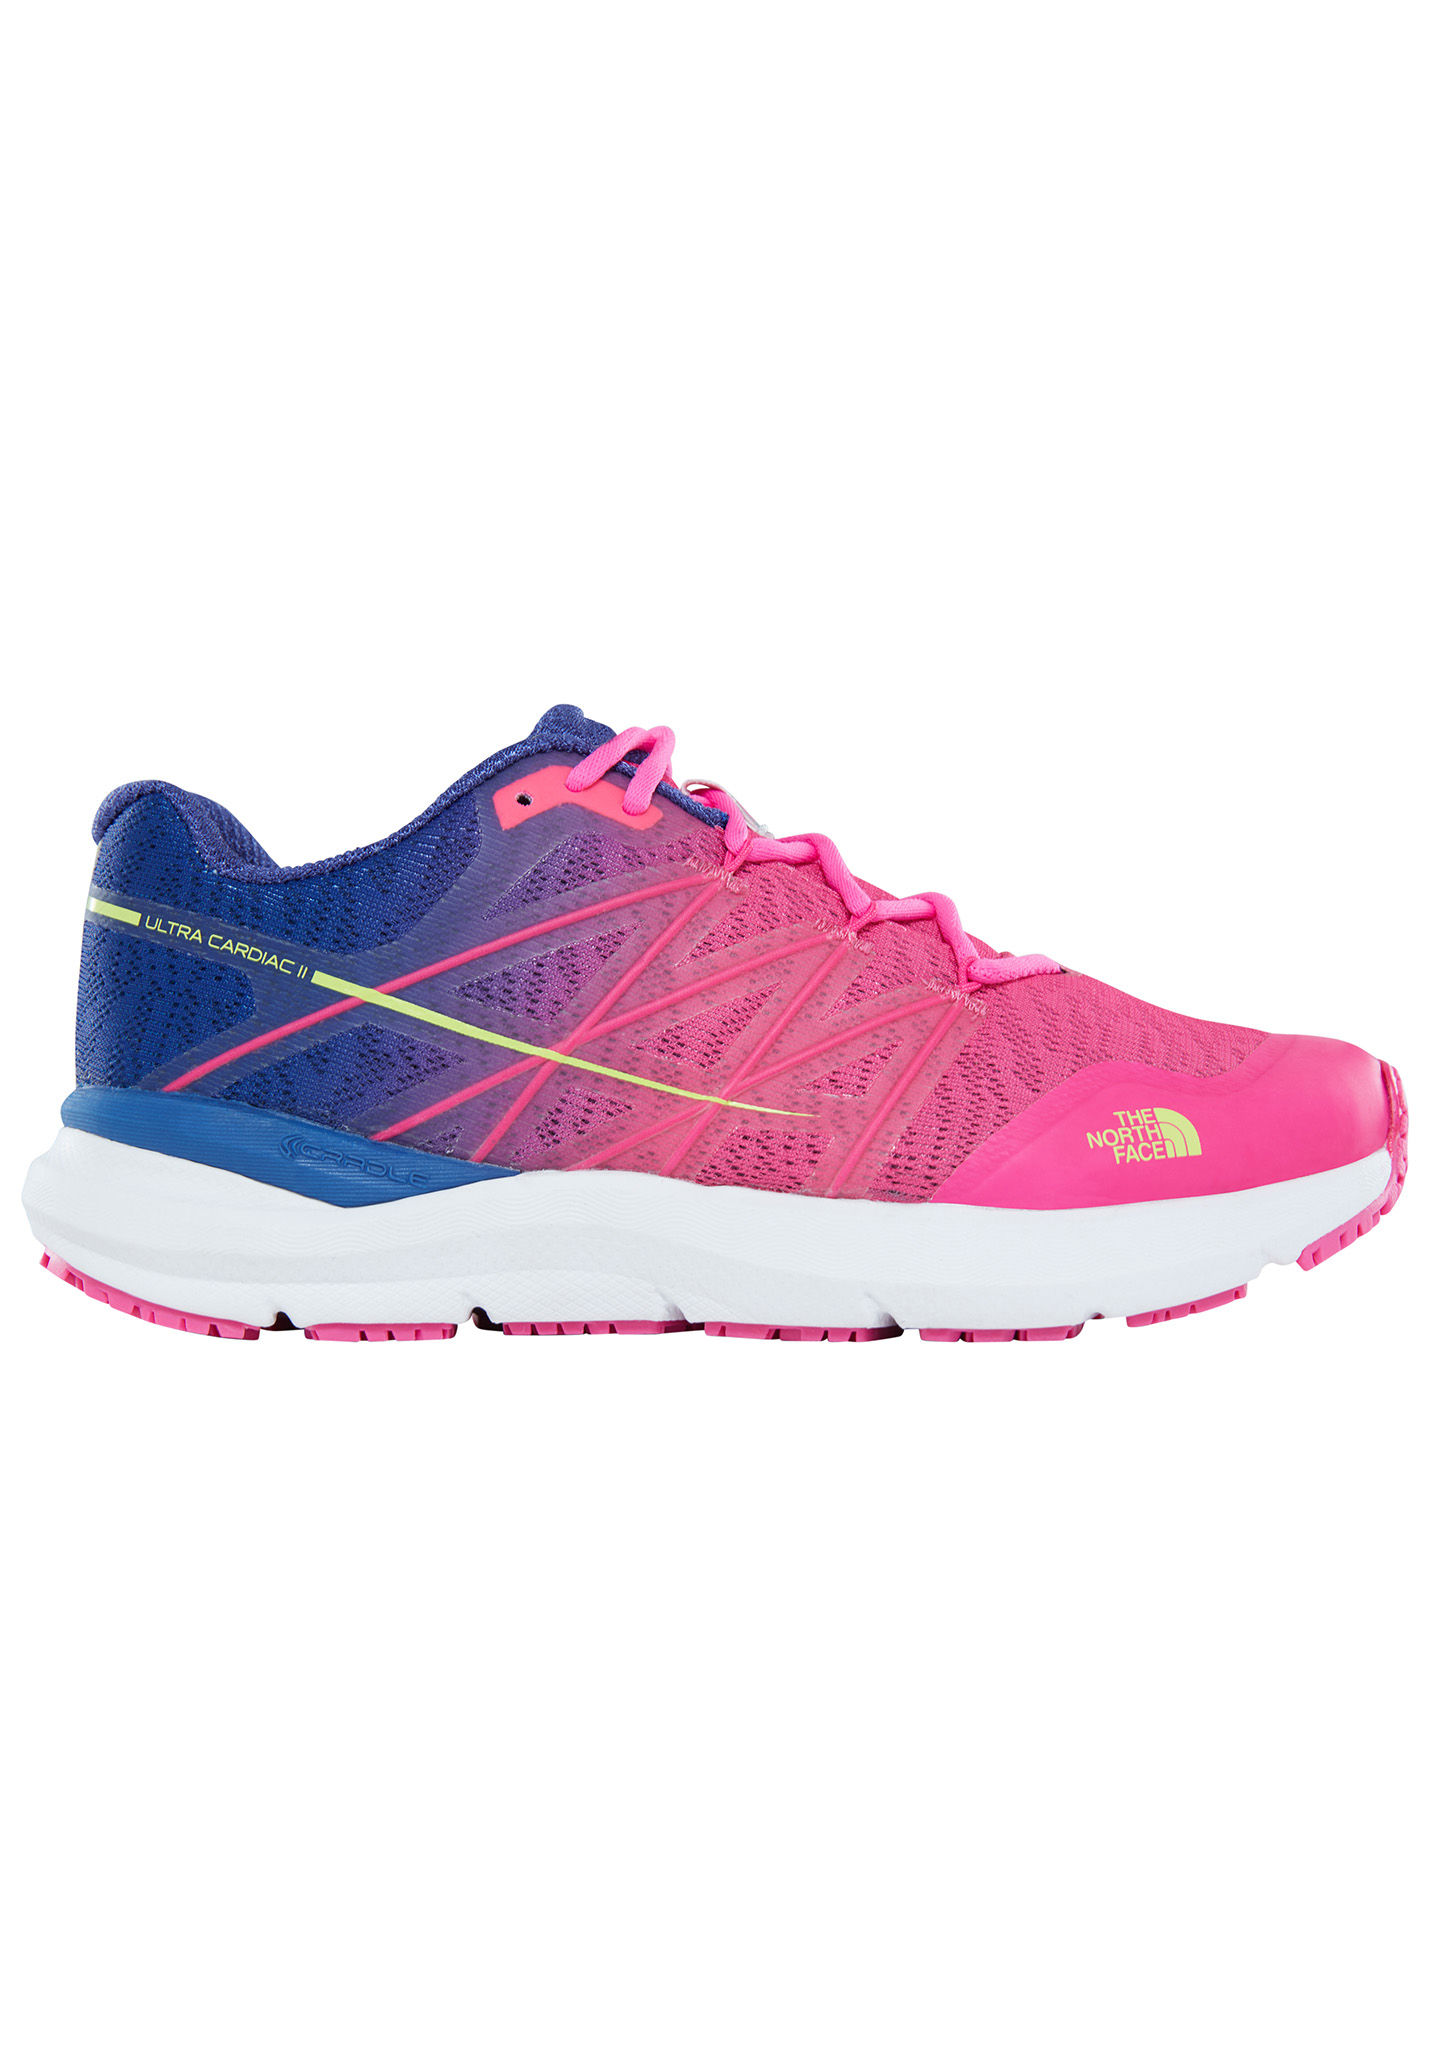 79417aabd THE NORTH FACE Ultra Cardiac II - Trekking Shoes for Women - Multicolor